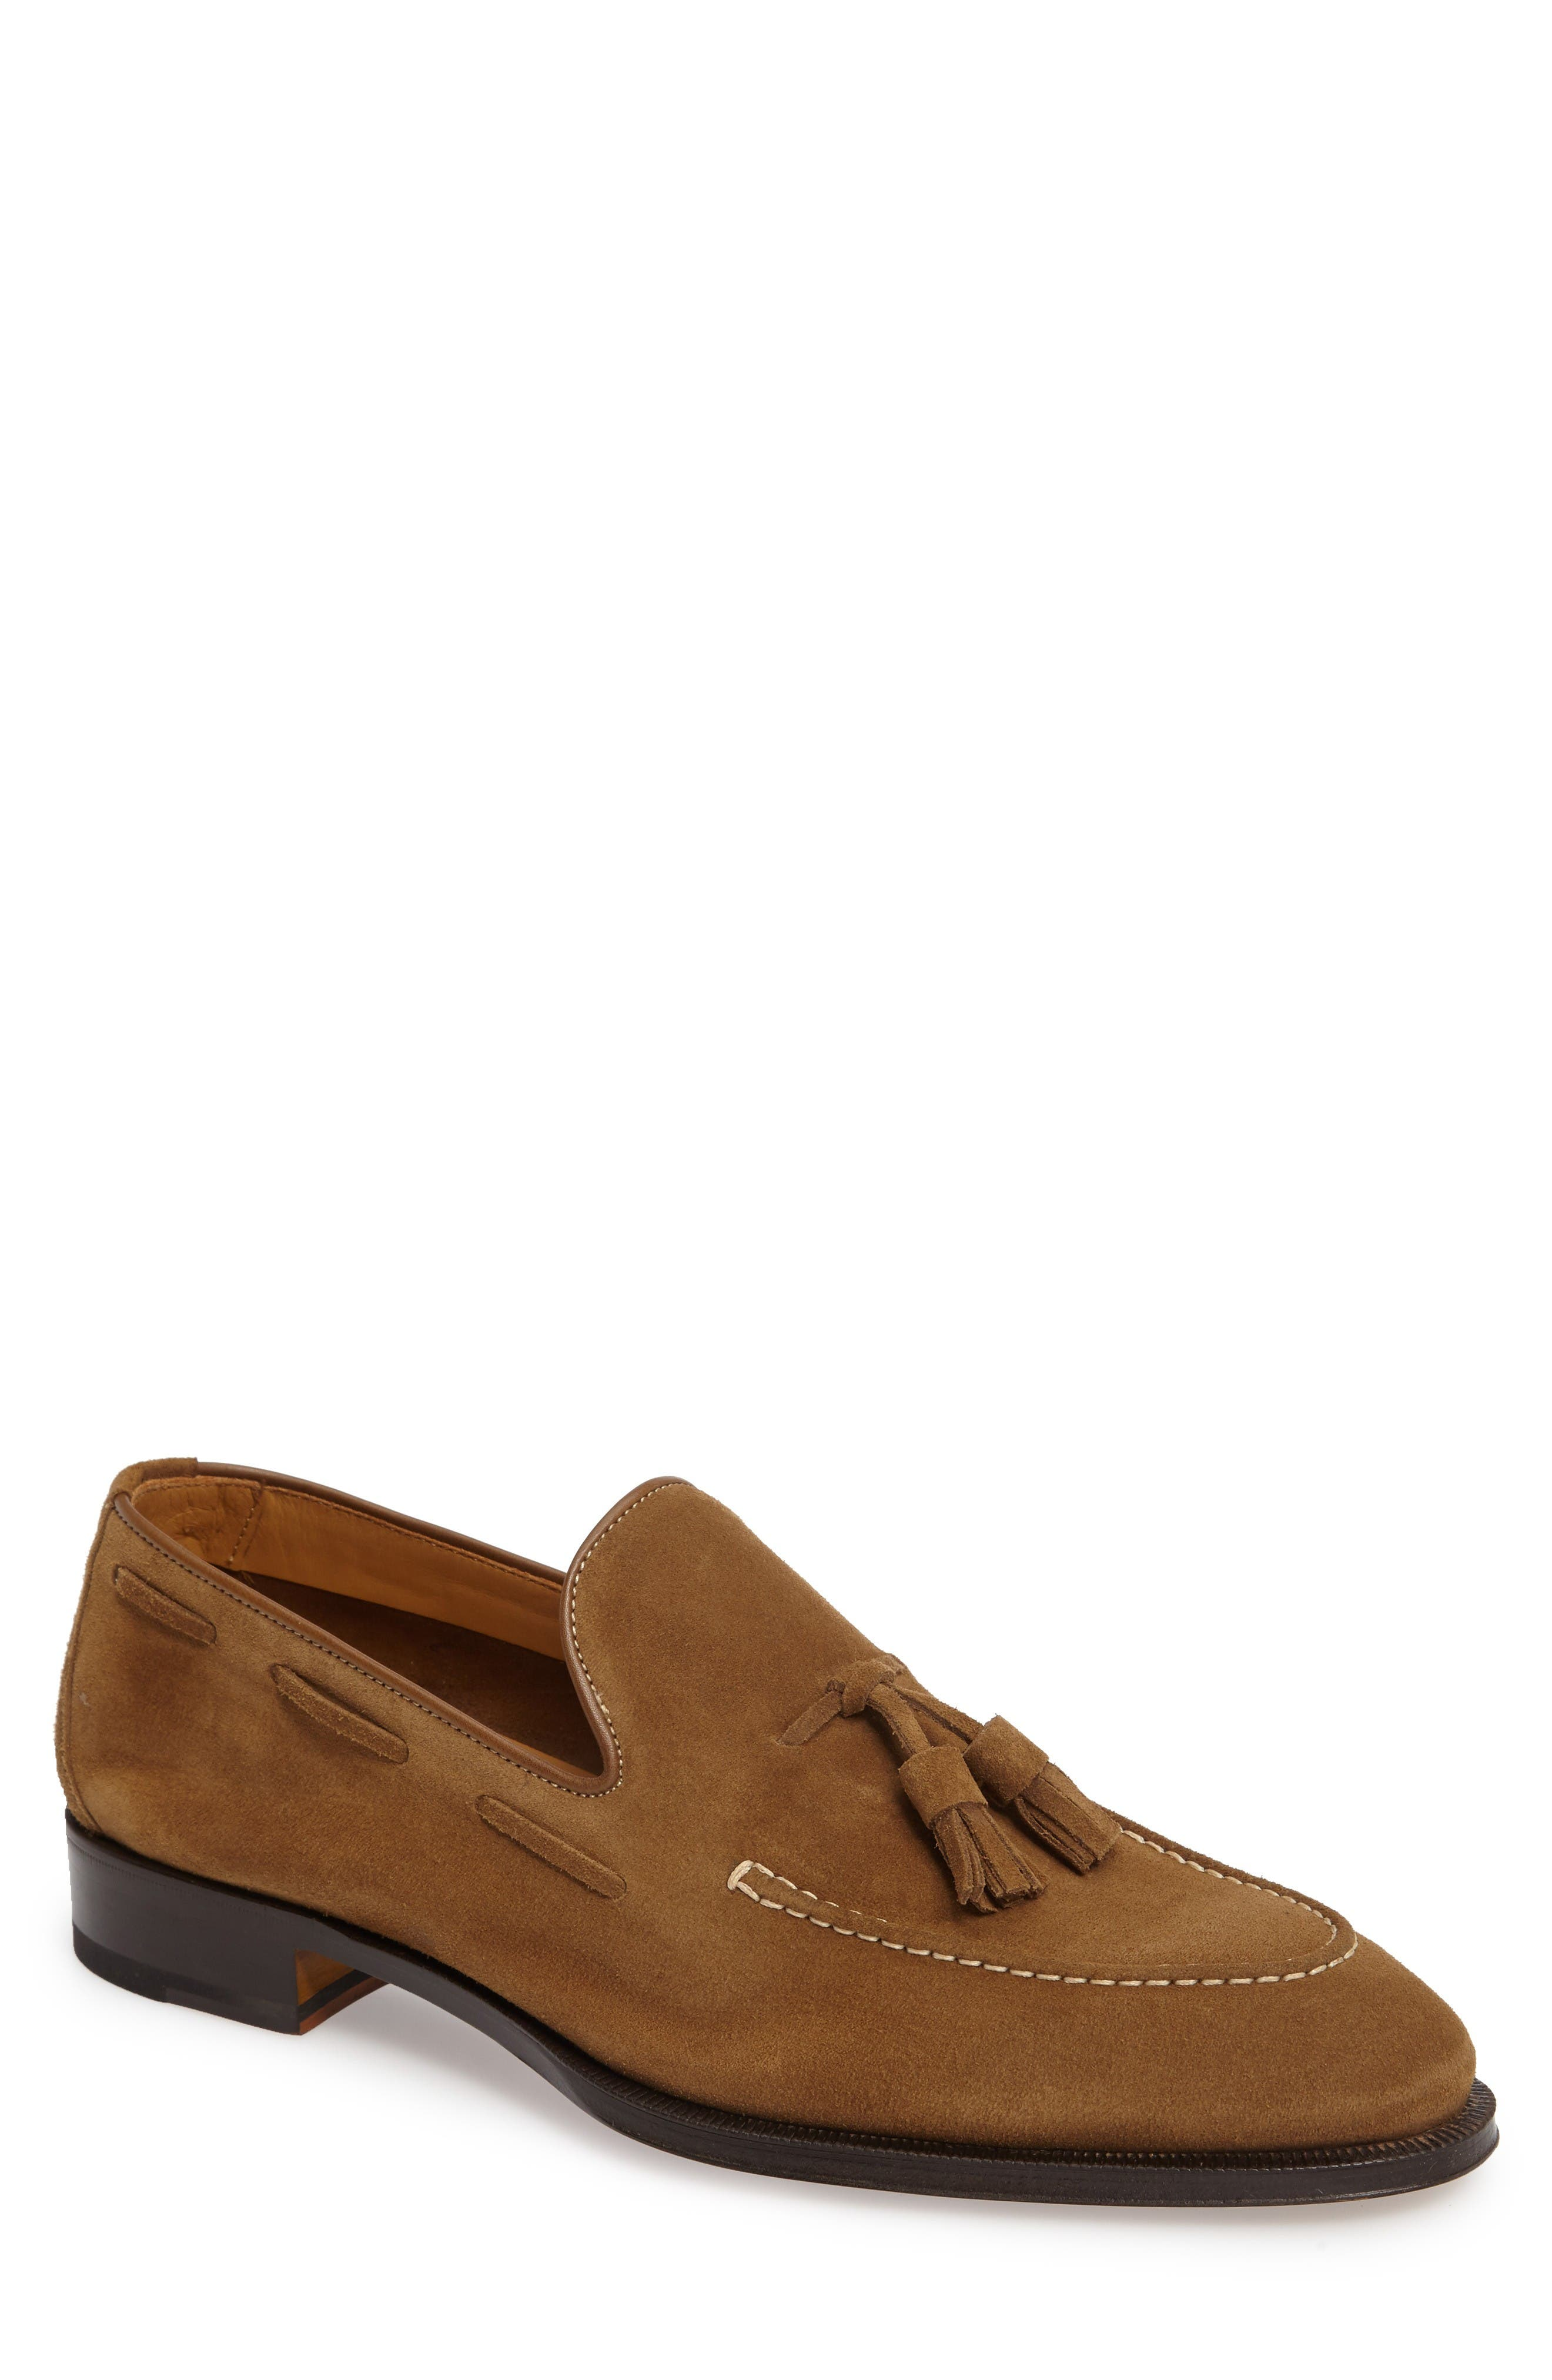 DI BIANCO GALLO Tassel Loafer